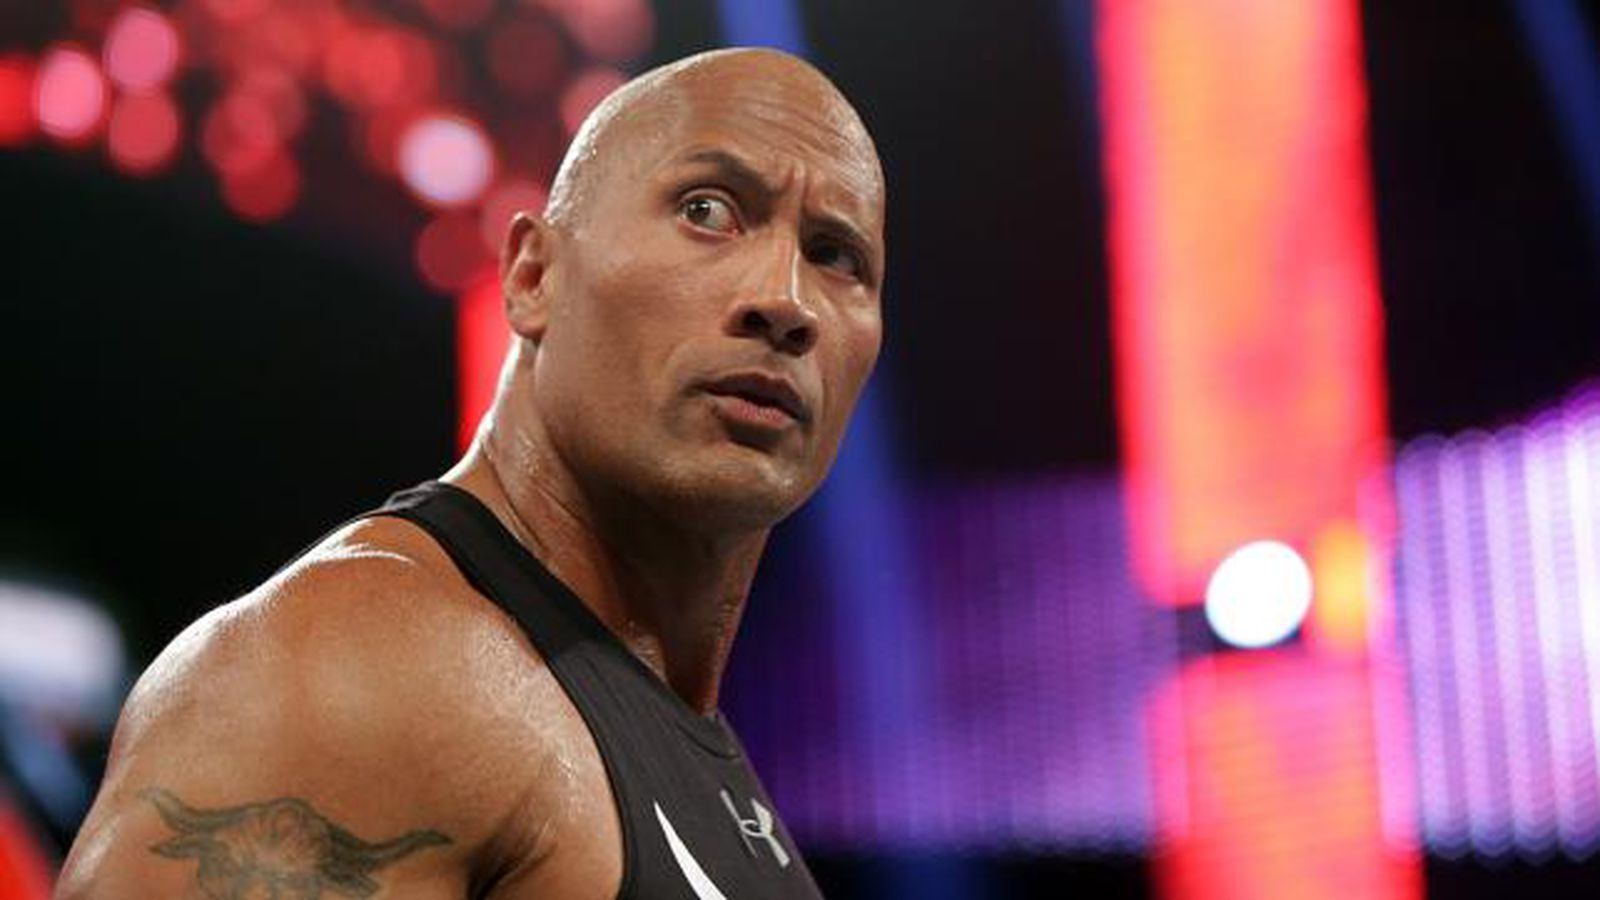 Images Of The Rock Wwe: WWE Raw Results, Recap, Reactions (Jan. 25, 2016): The